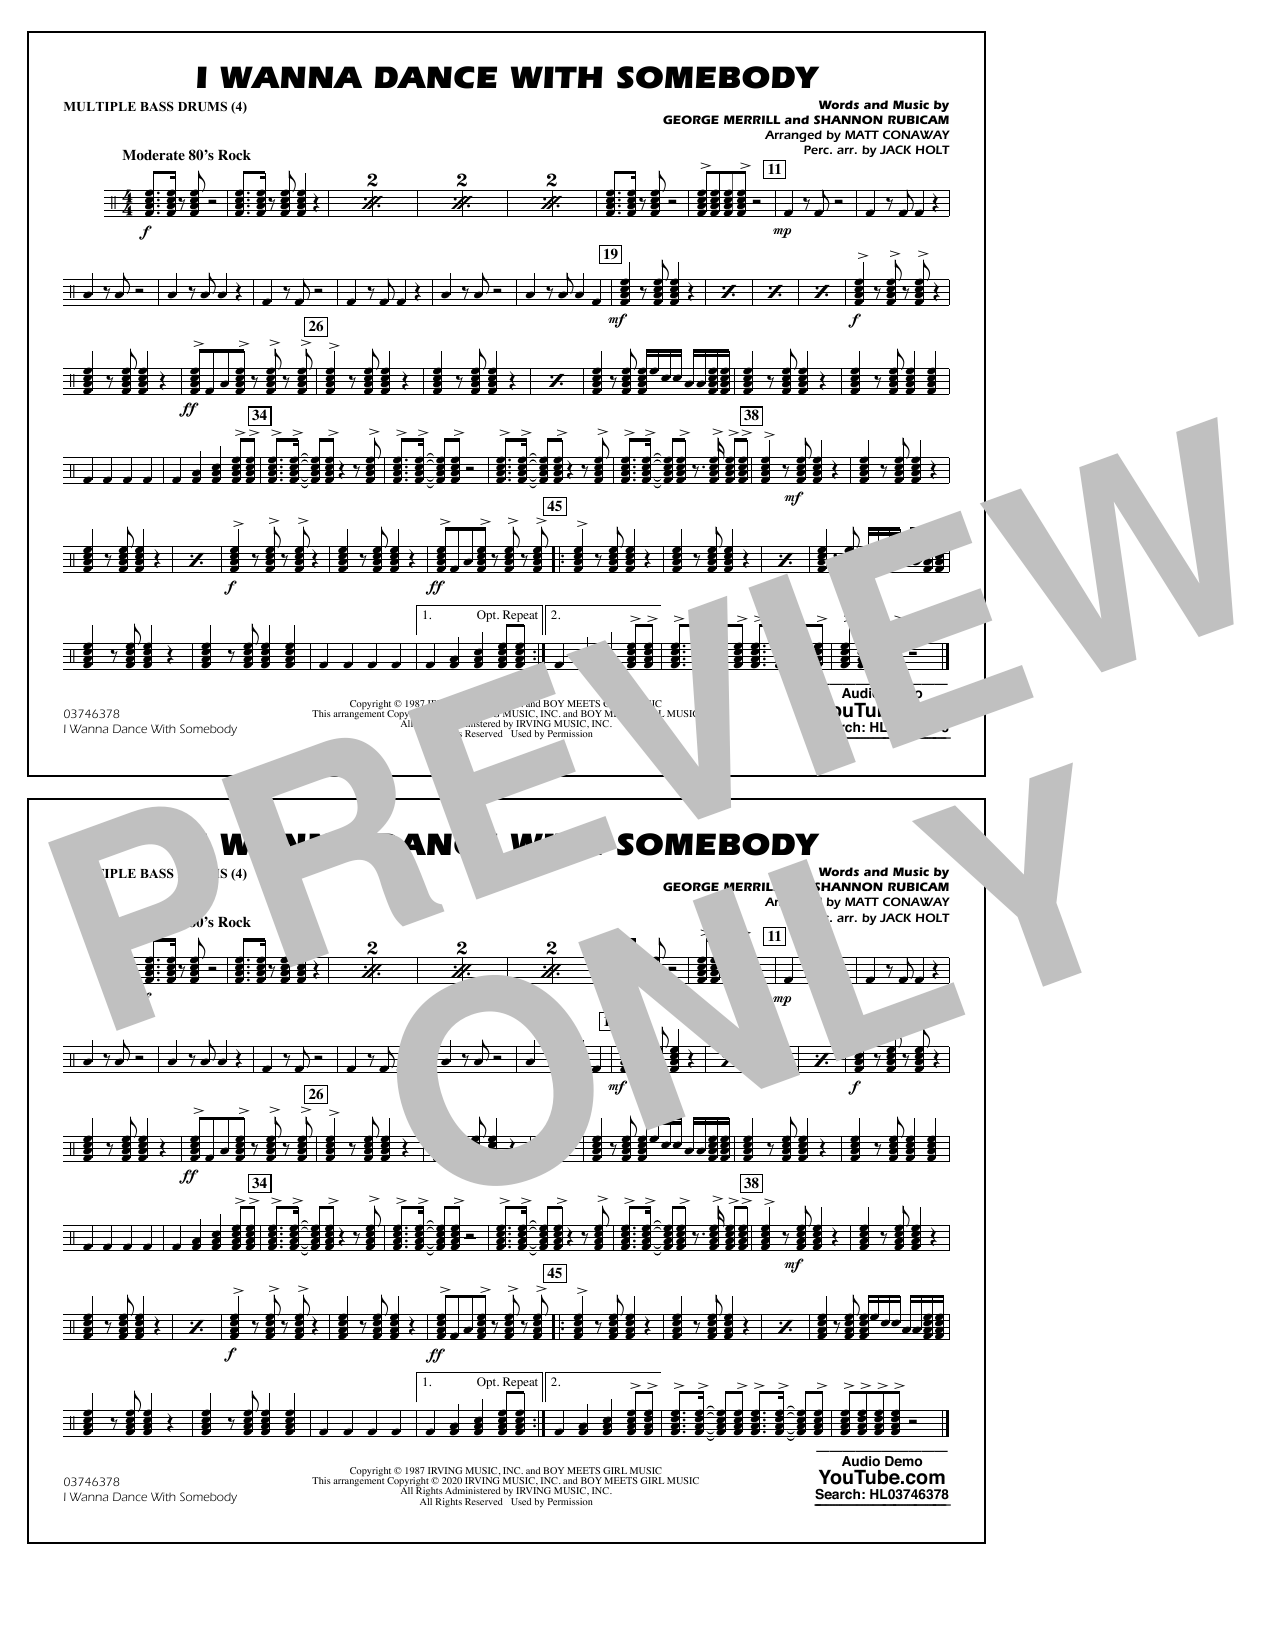 Whitney Houston I Wanna Dance with Somebody (arr. Conaway and Holt) - Multiple Bass Drums sheet music notes and chords. Download Printable PDF.